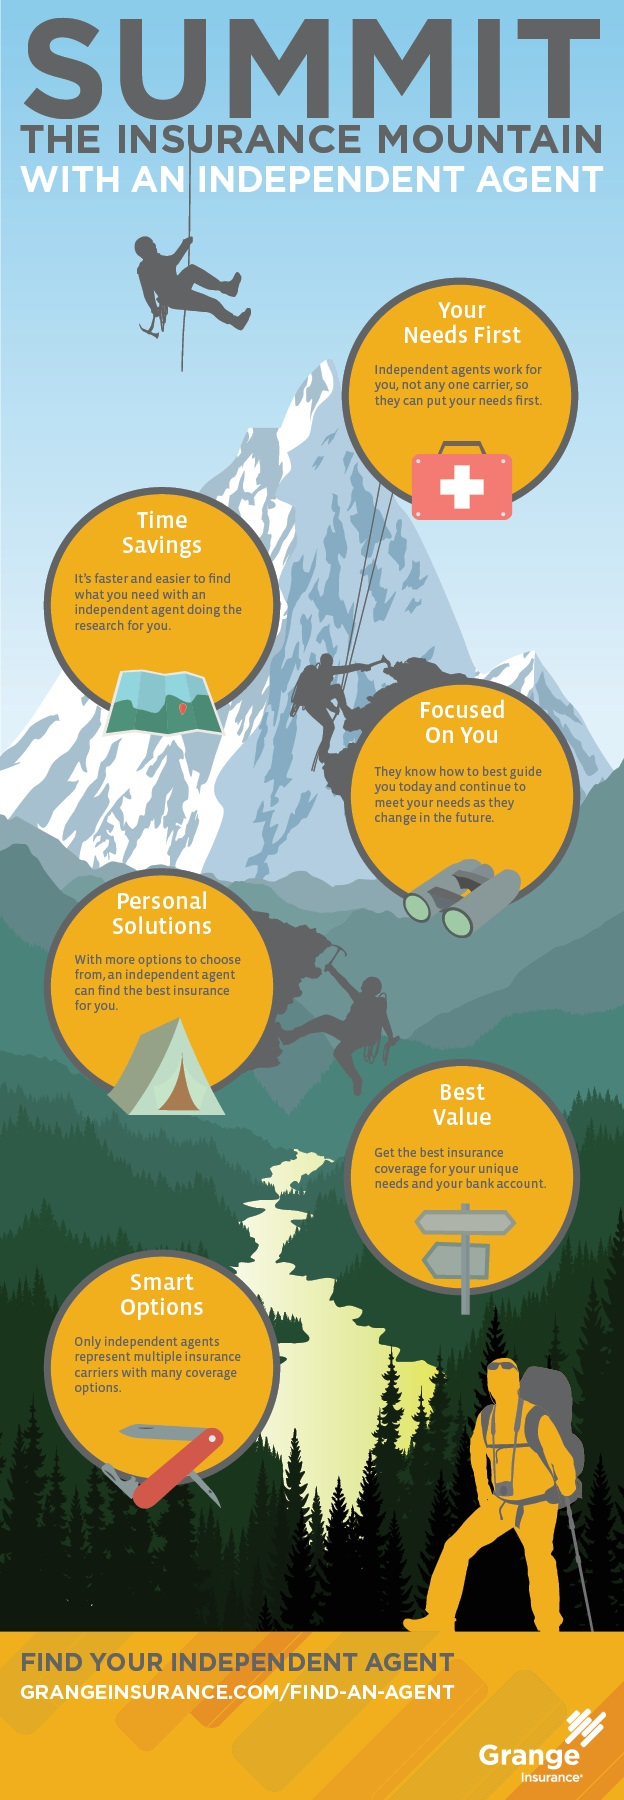 Summit the insurance mountain with an independent agent